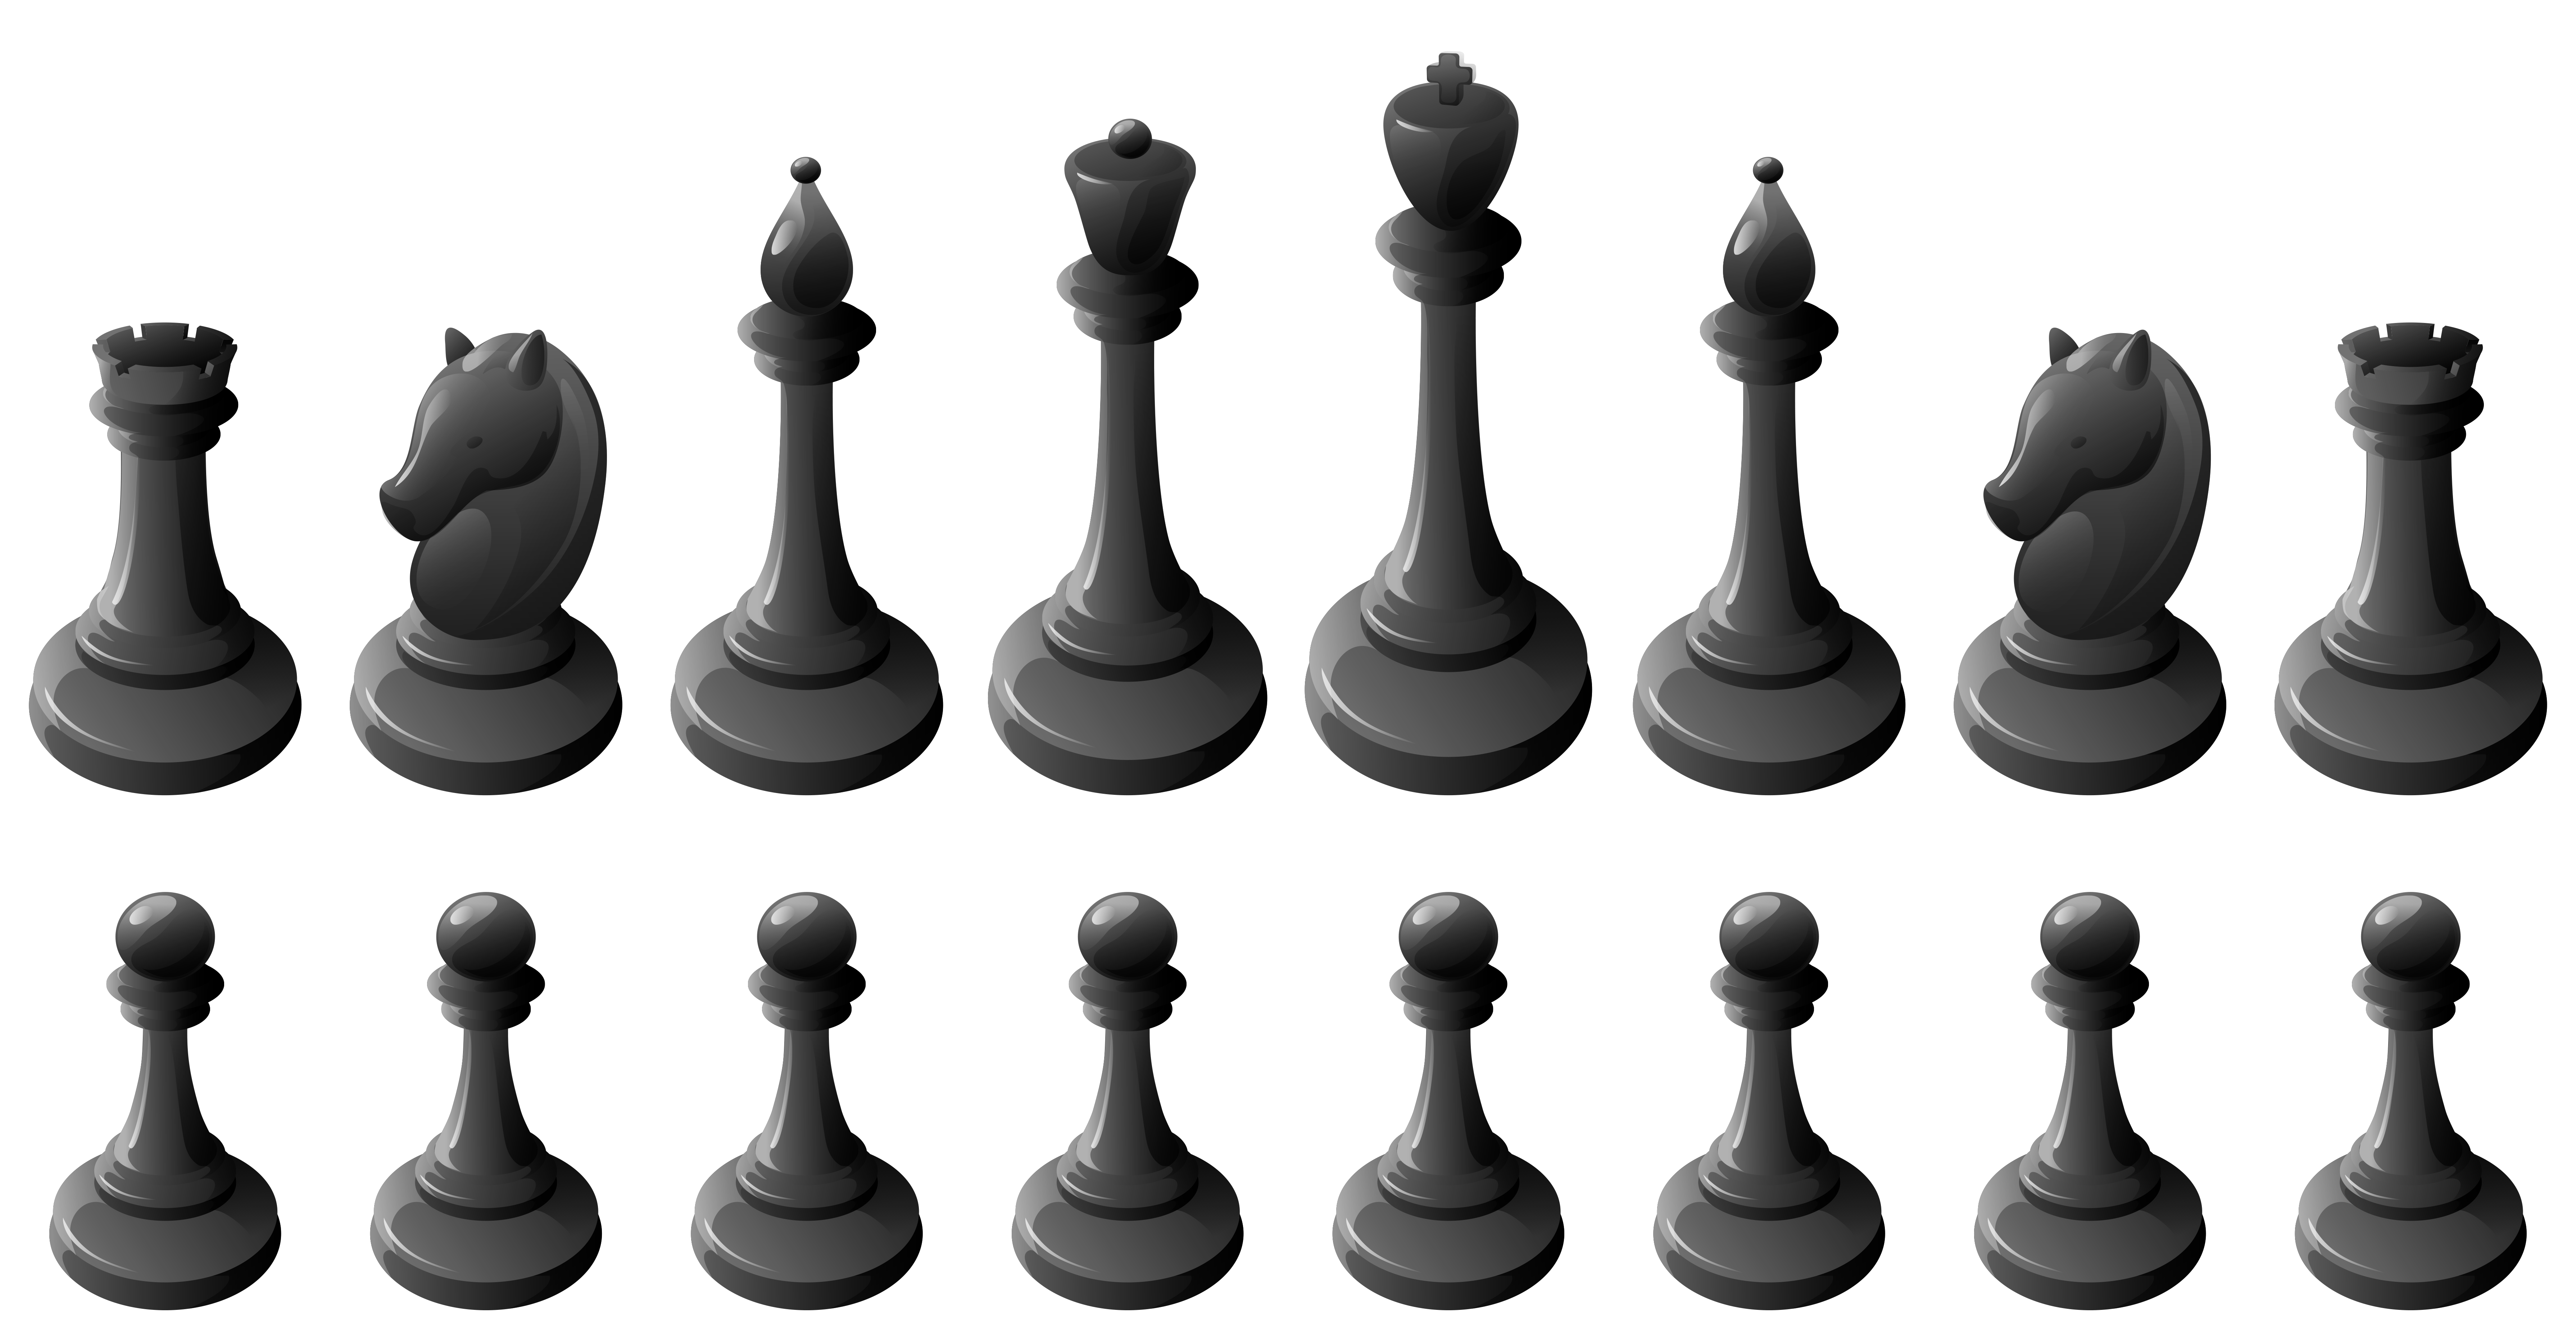 Game clipart board game. Black chess pieces png